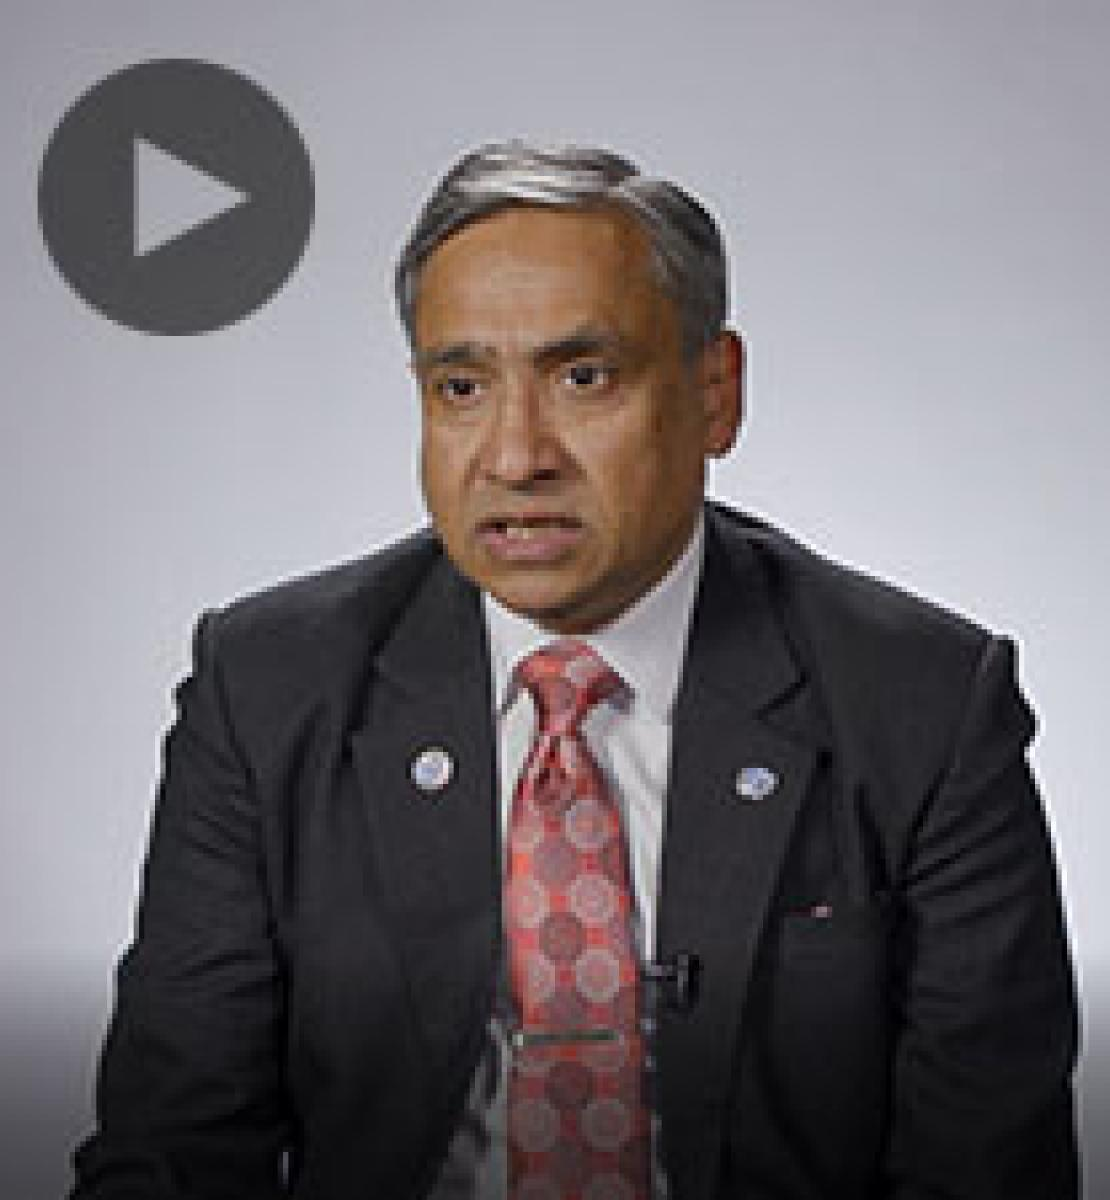 Screenshot from video message shows Resident Coordinator, Tapan Mishra